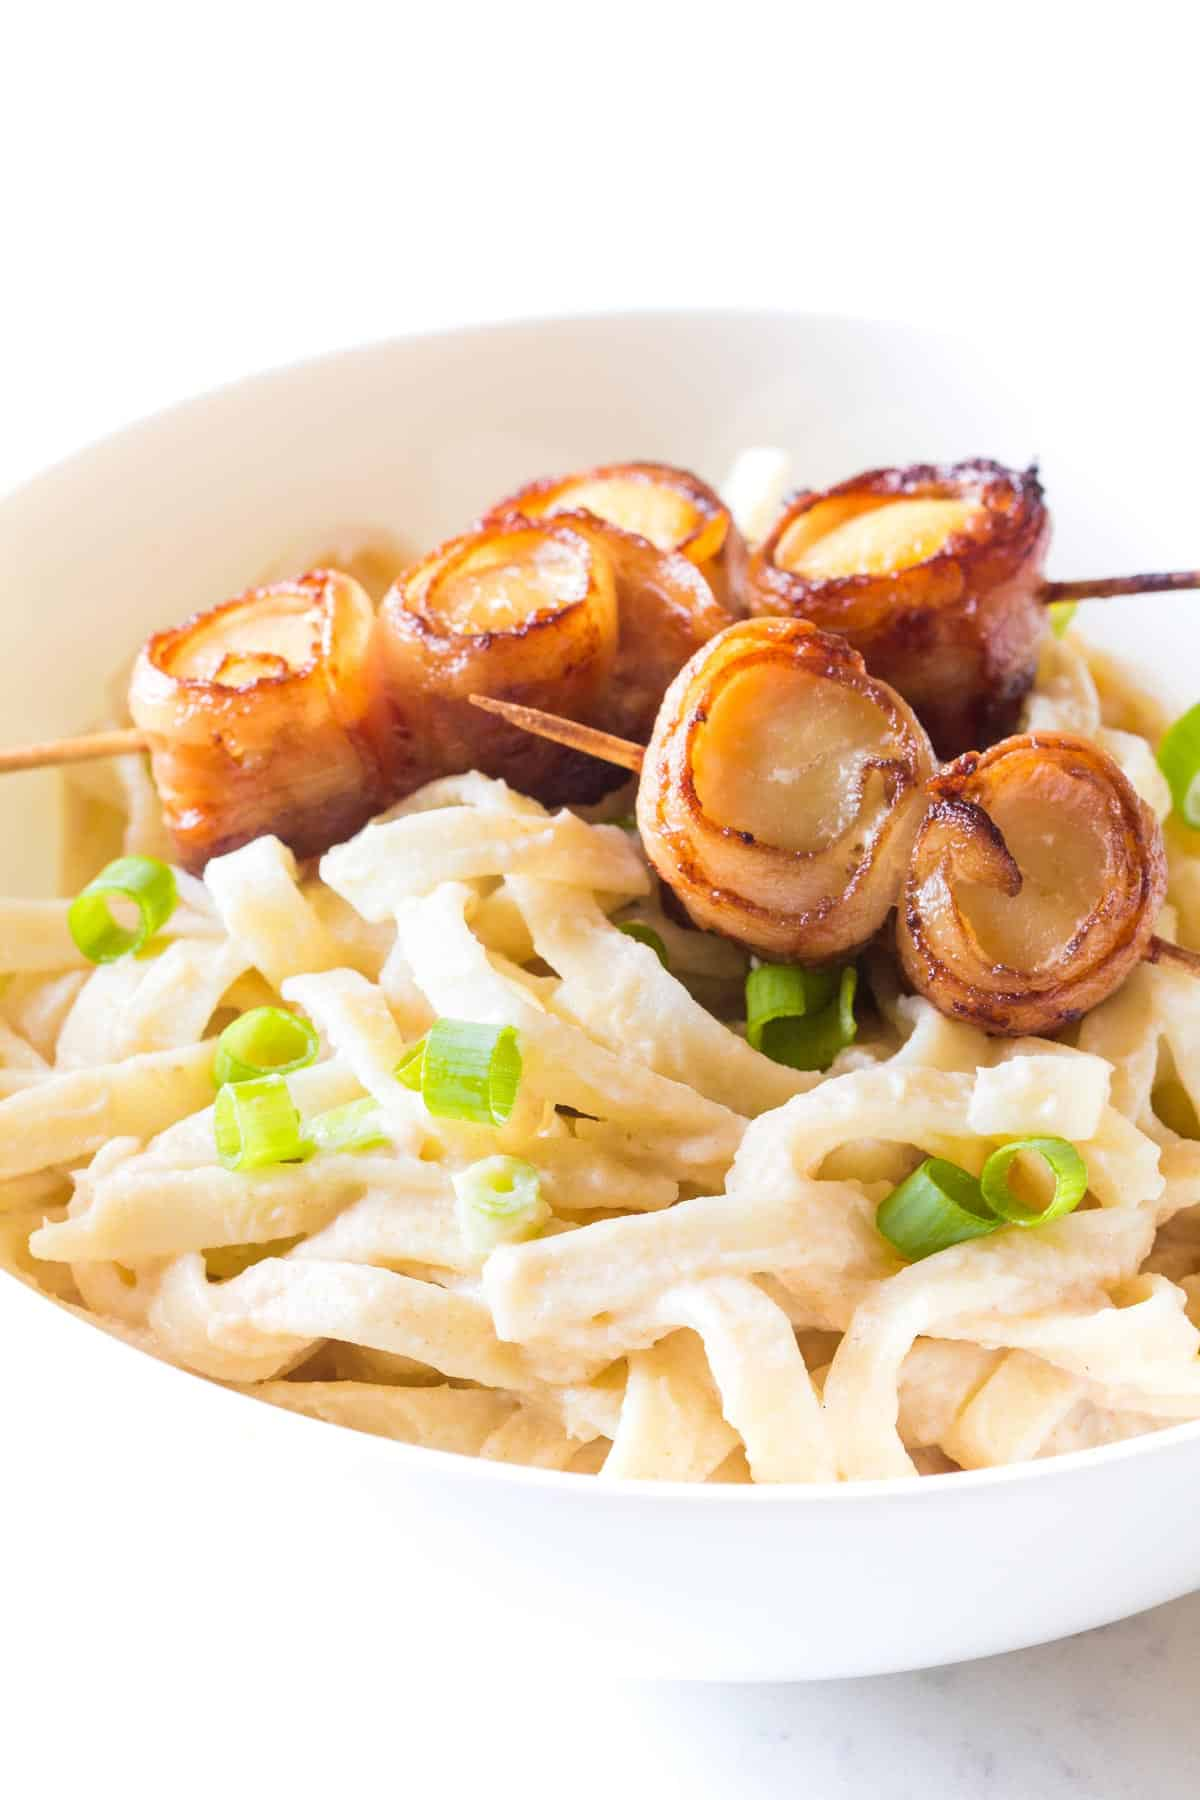 Bacon Wrapped Scallops on skewer on top of pasta in bowl